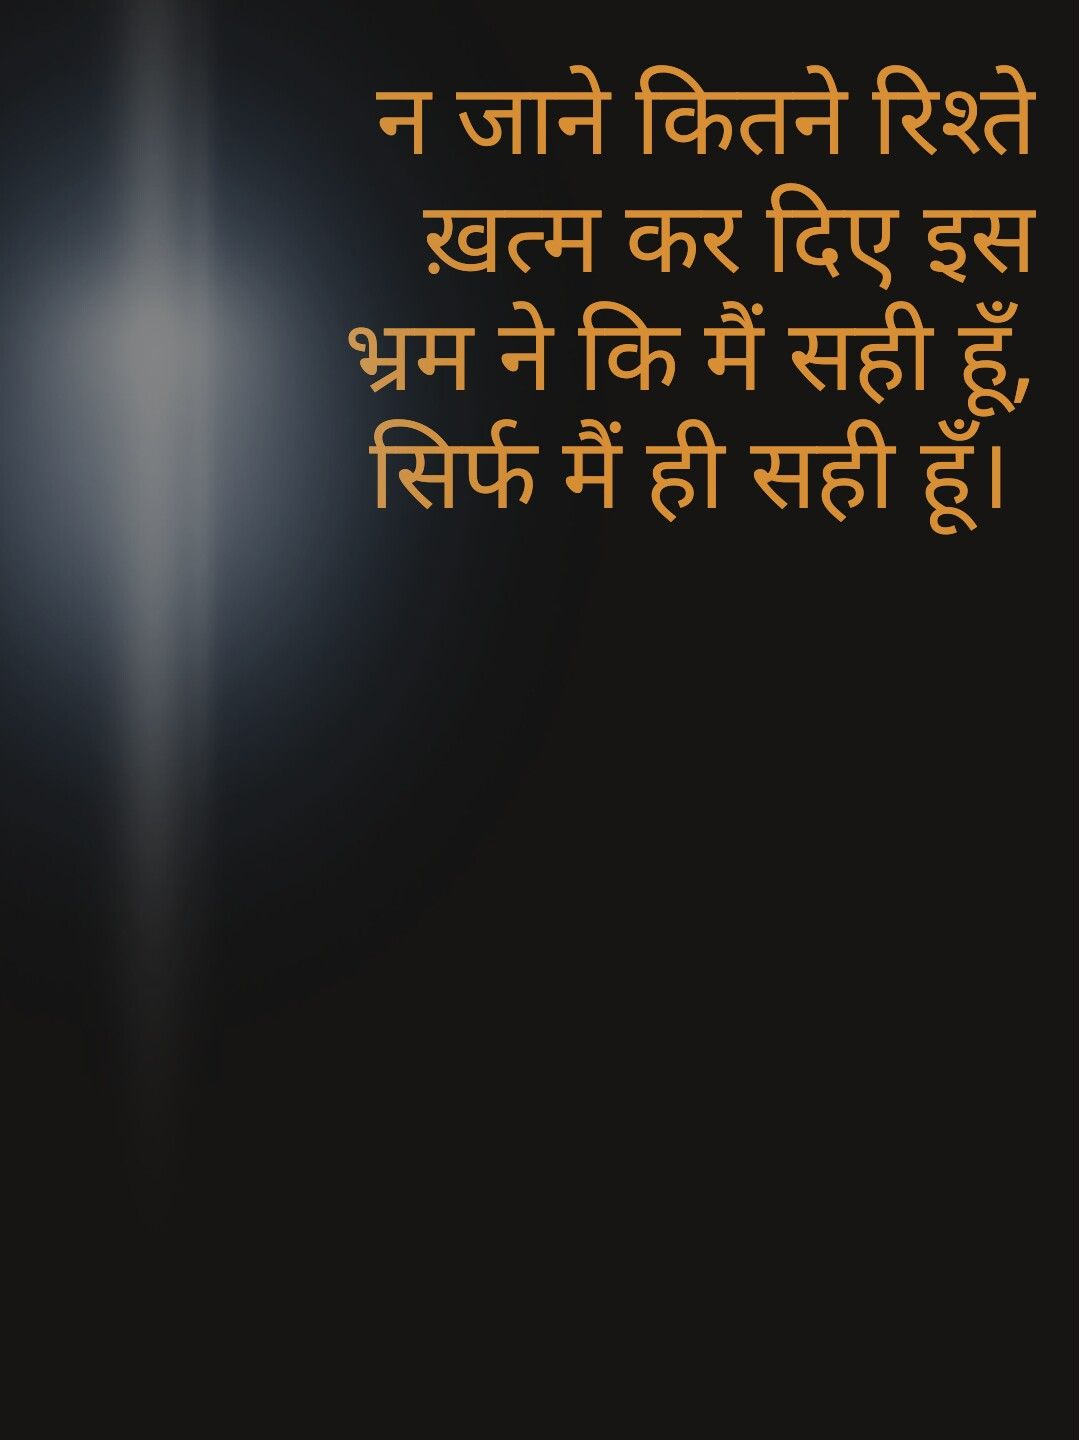 Life Ego Hindi Hindi Quotes Shayari हद सवचर